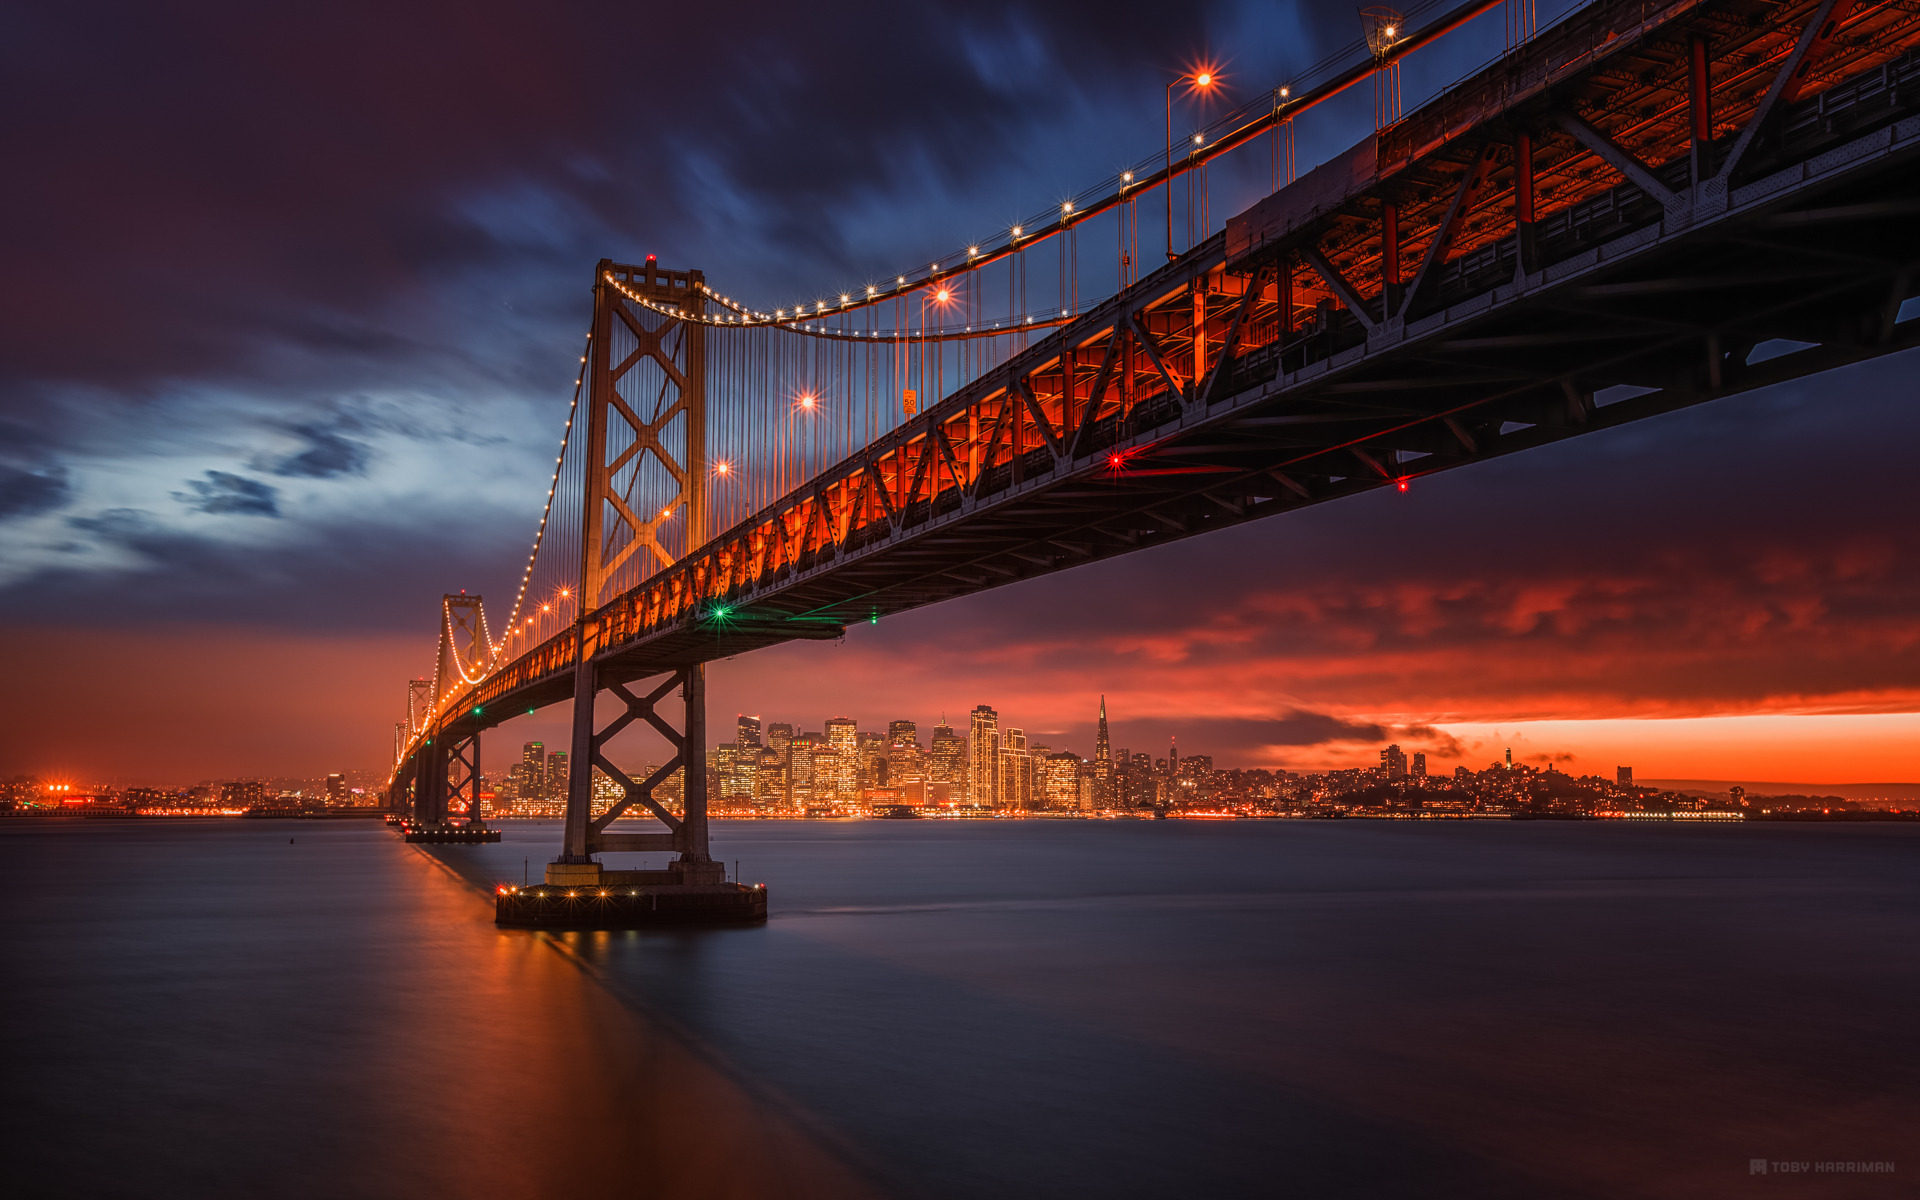 San Francisco Photography - Toby Harriman